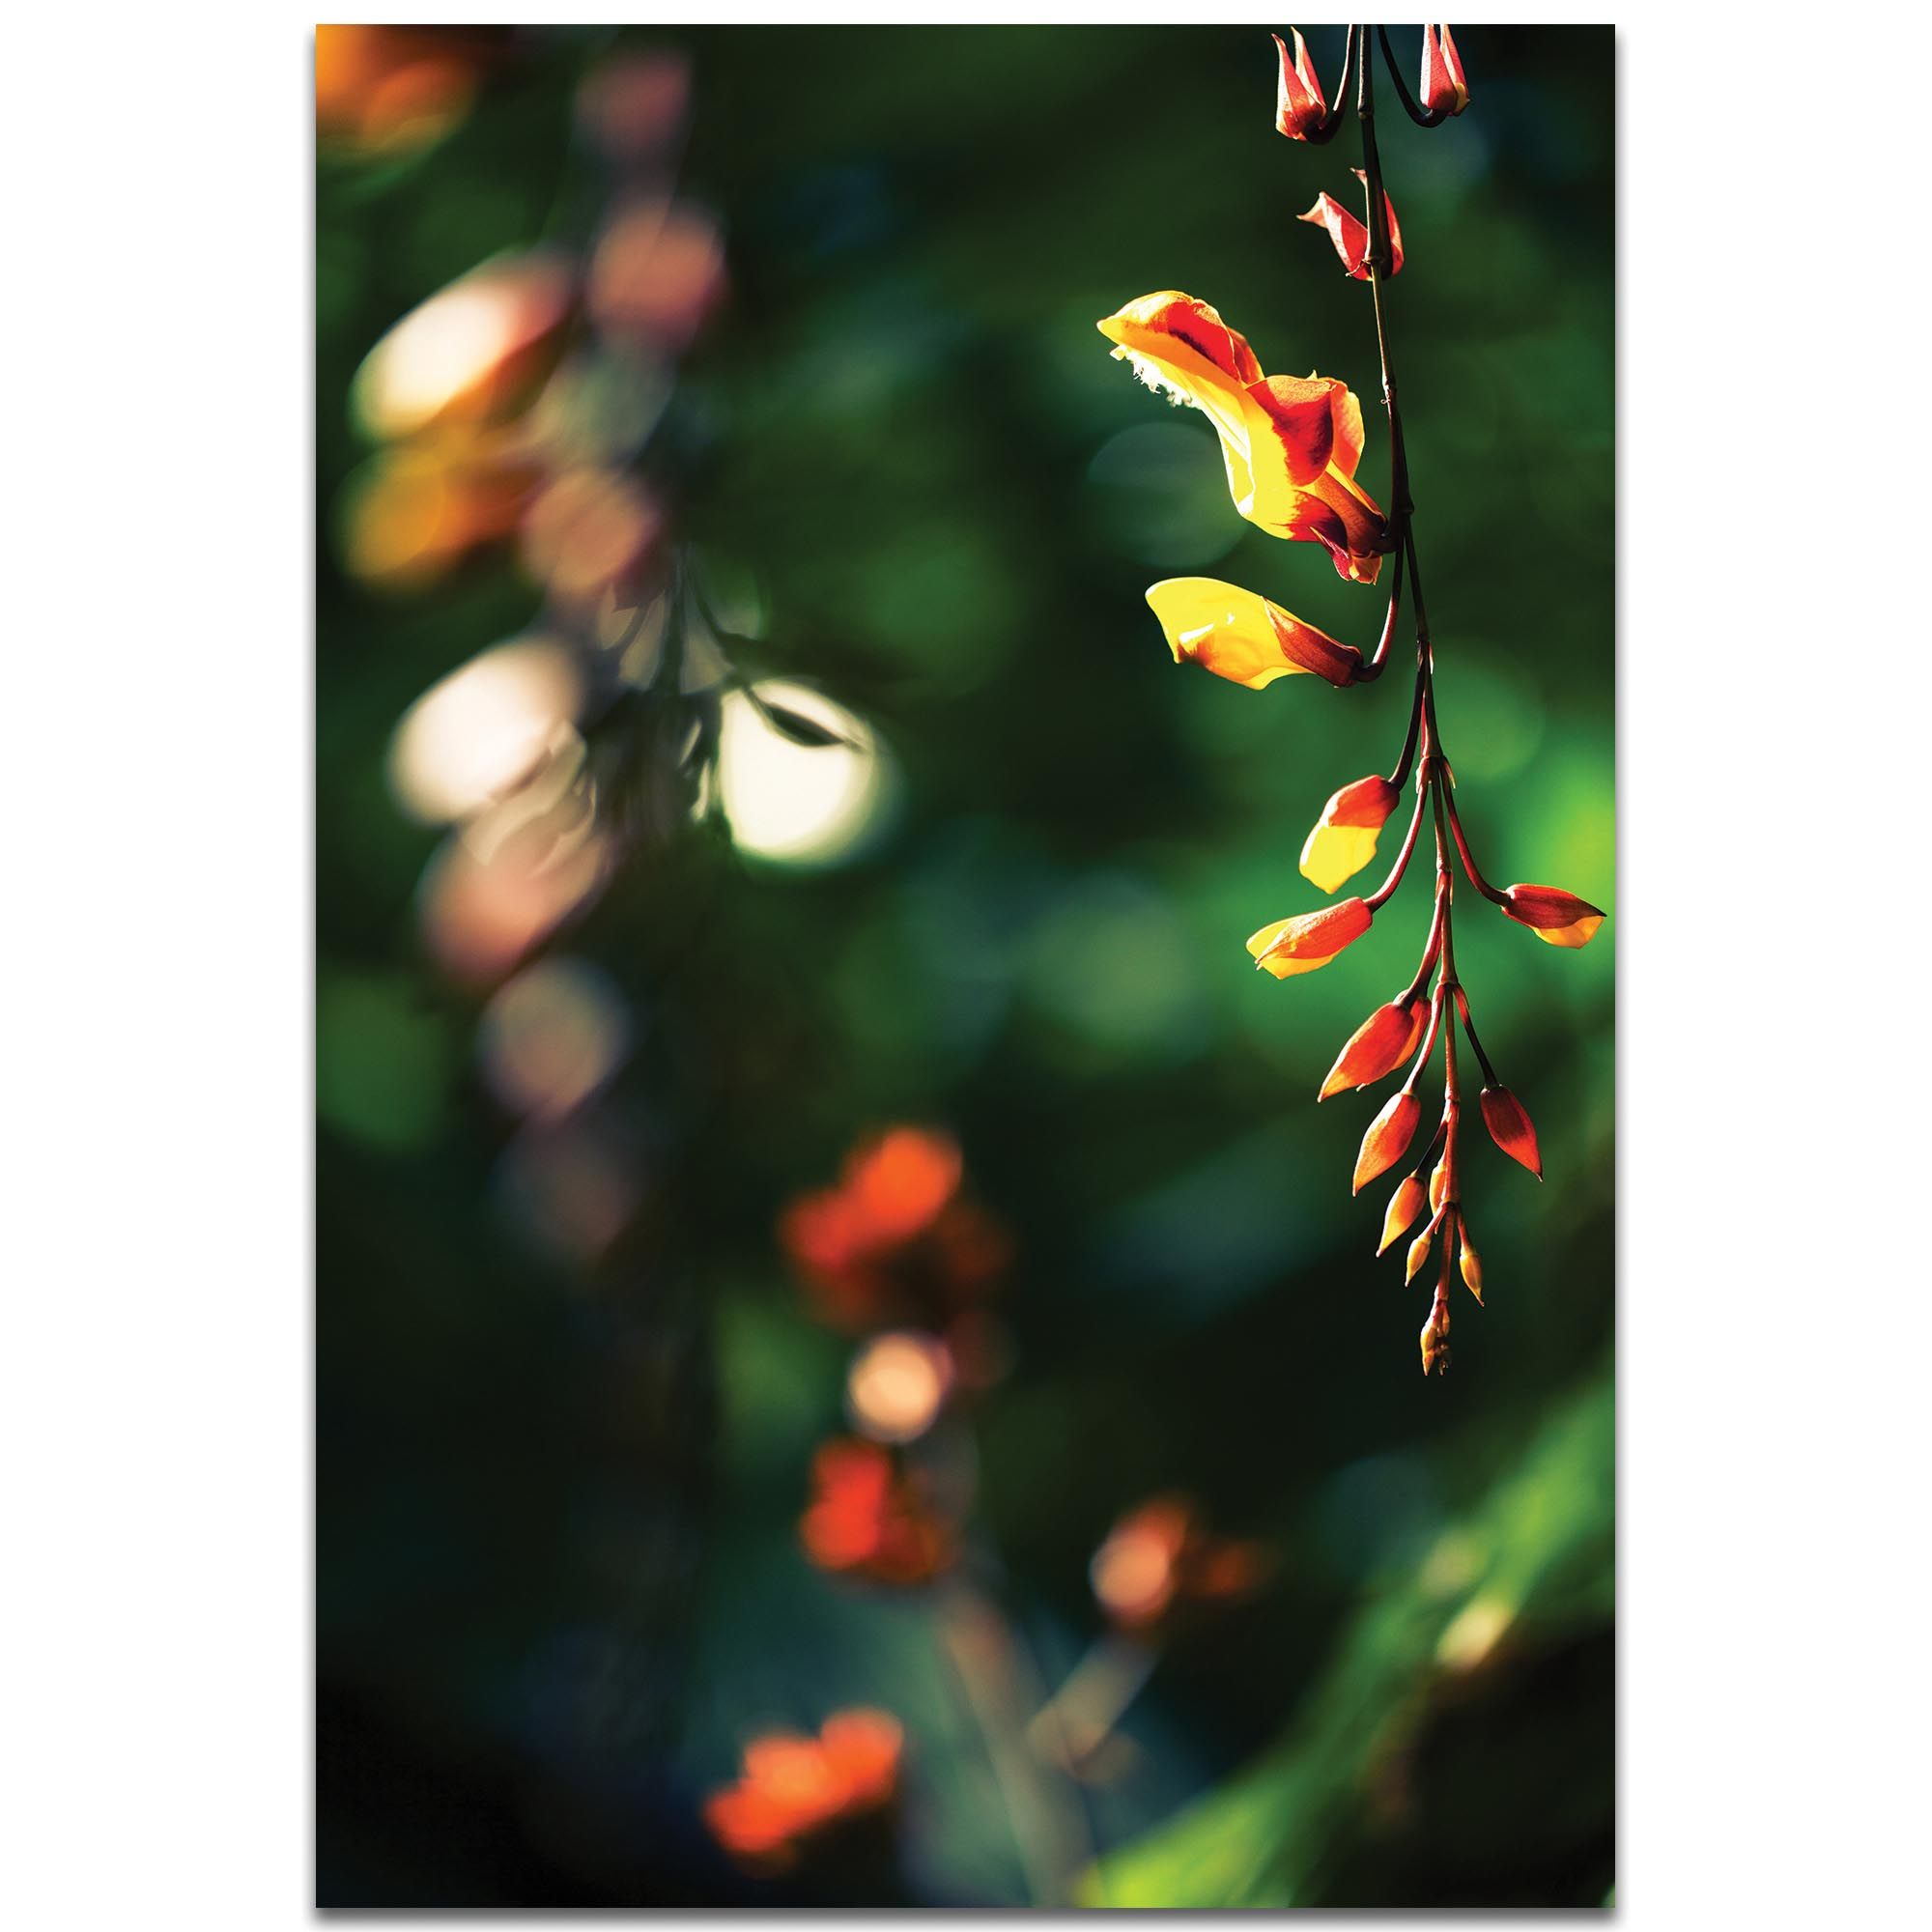 Nature Photography 'Hanging Flowers' - Flower Blossom Art on Metal or Plexiglass